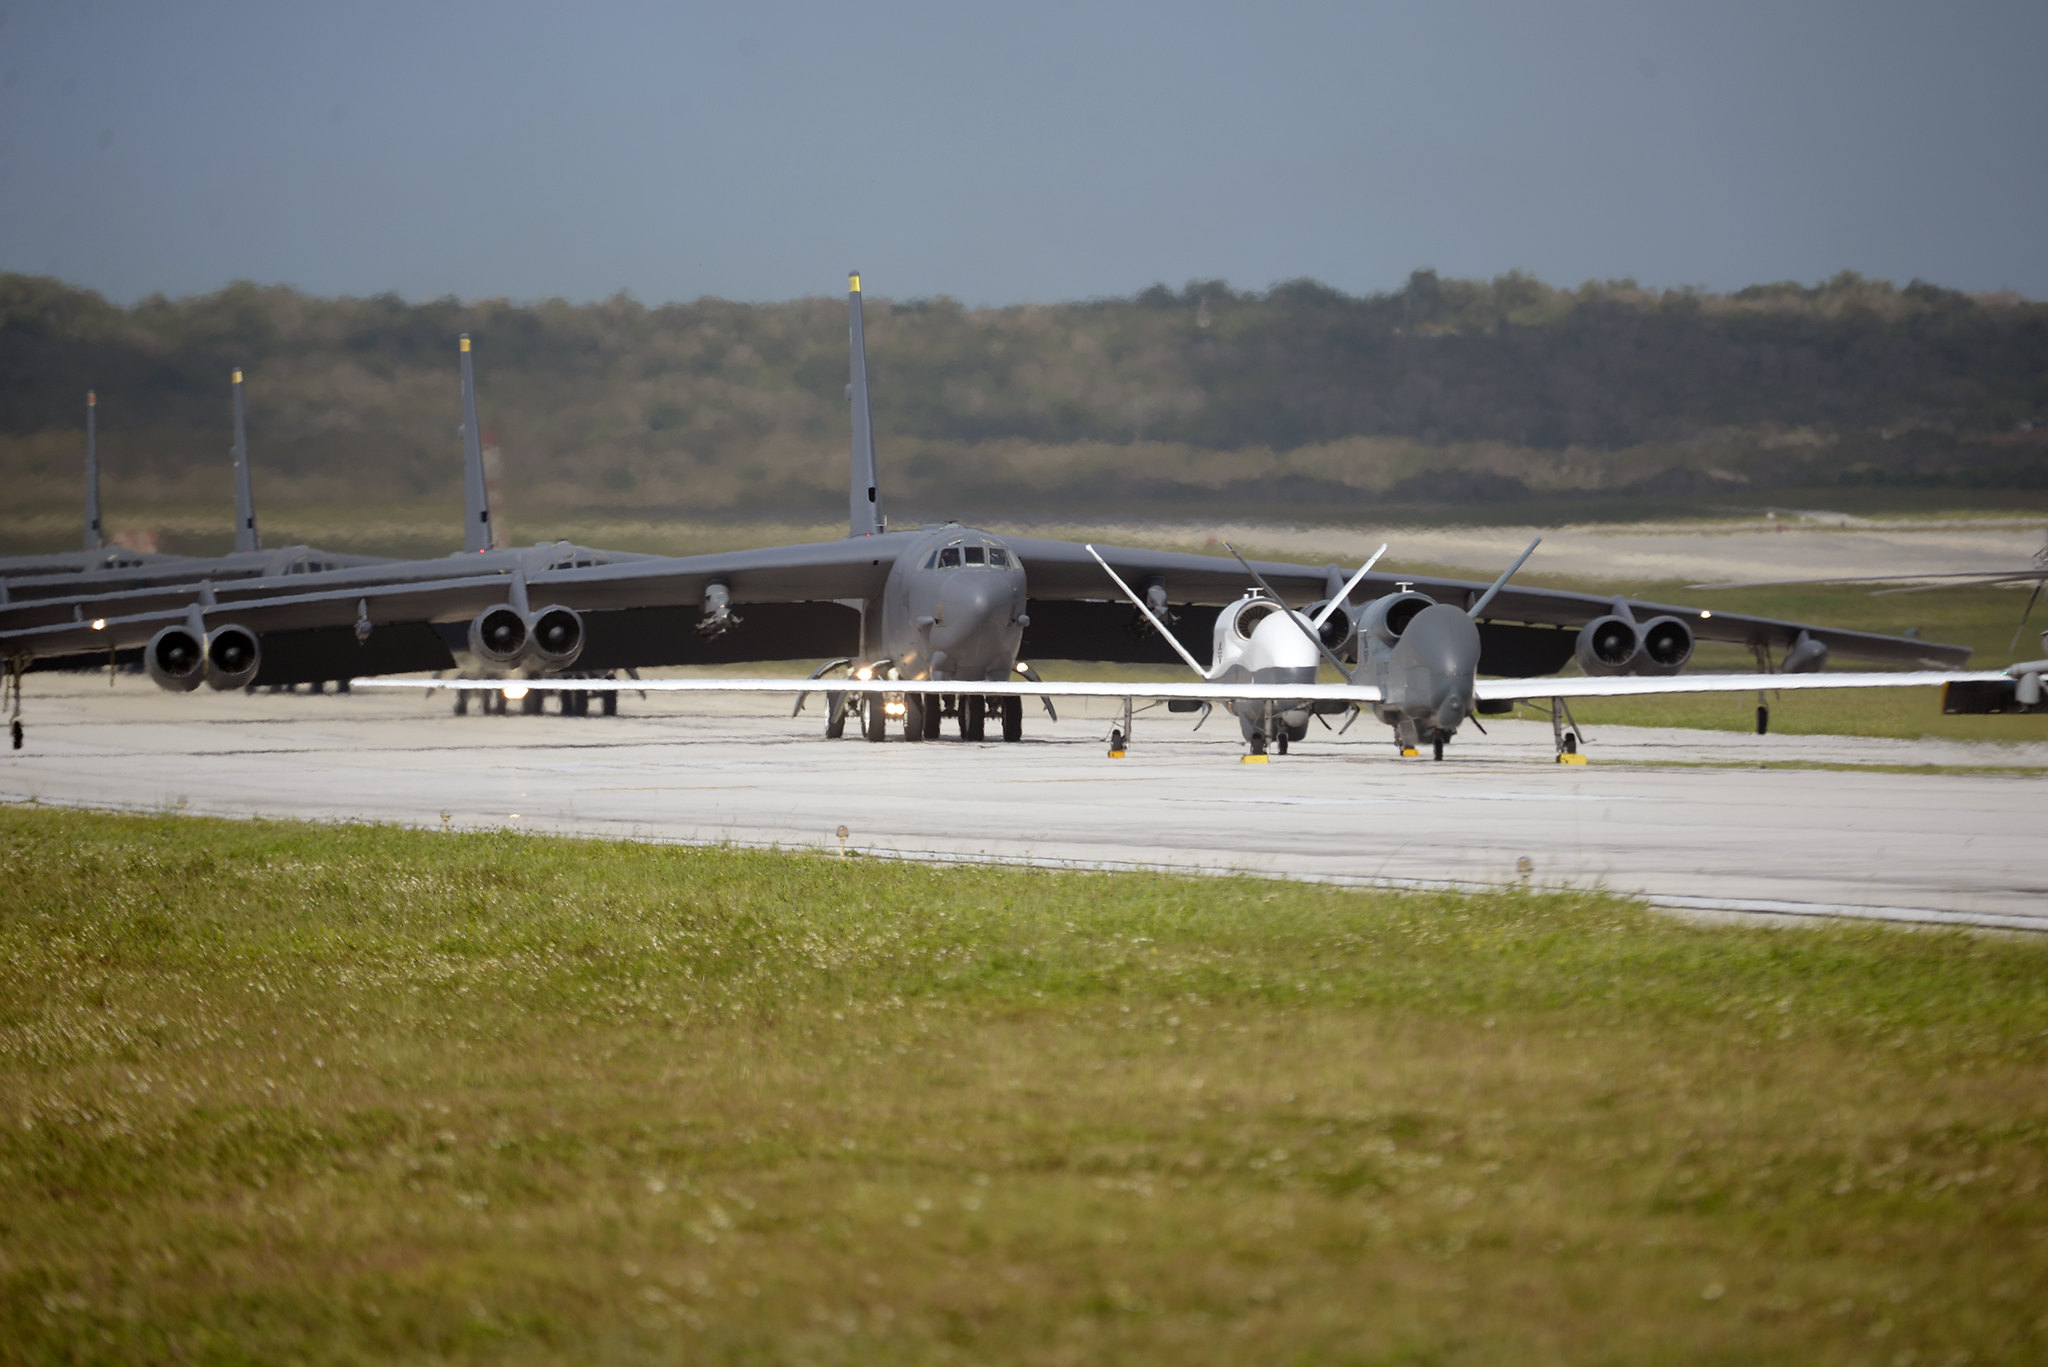 A U.S. Navy MH-60S Knighthawk, U.S. Air Force RQ-4 Global Hawk, Navy MQ-4C Triton, Air Force B-52 Stratofortresses, and KC-135 Stratotankers stationed at Andersen Air Force Base, Guam, perform an